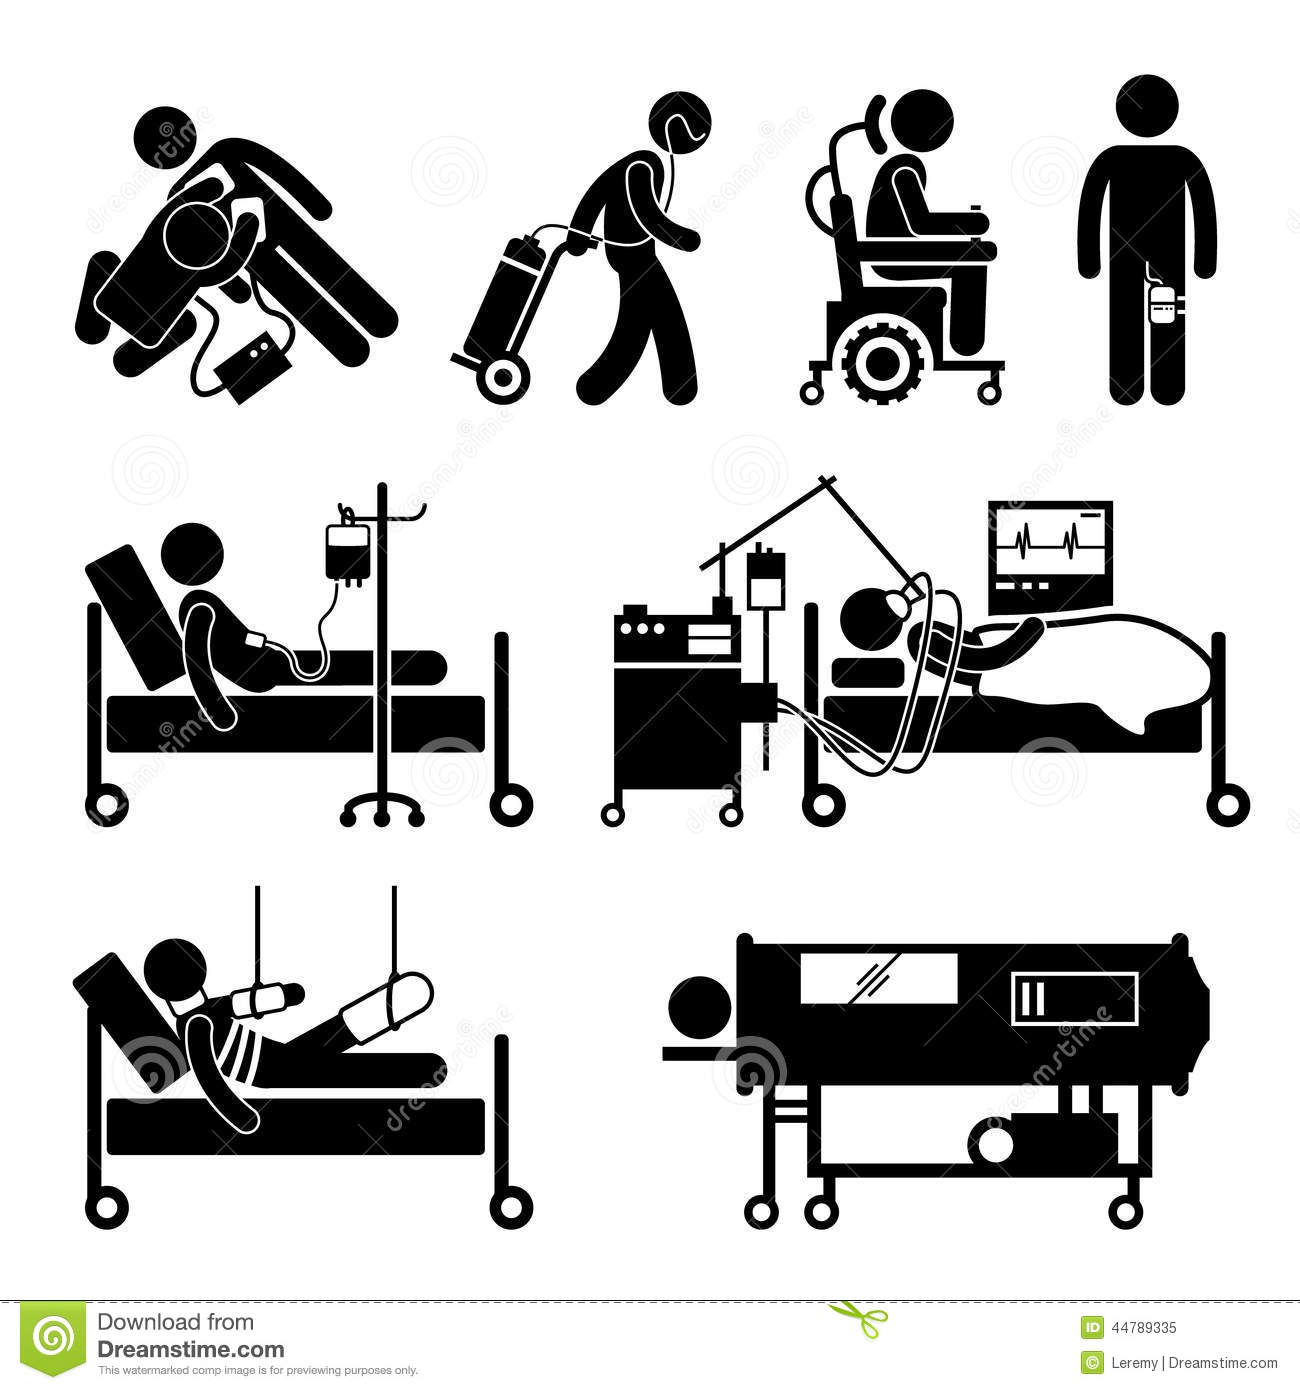 Life Support Equipments Cliparts Icons Stock Vector